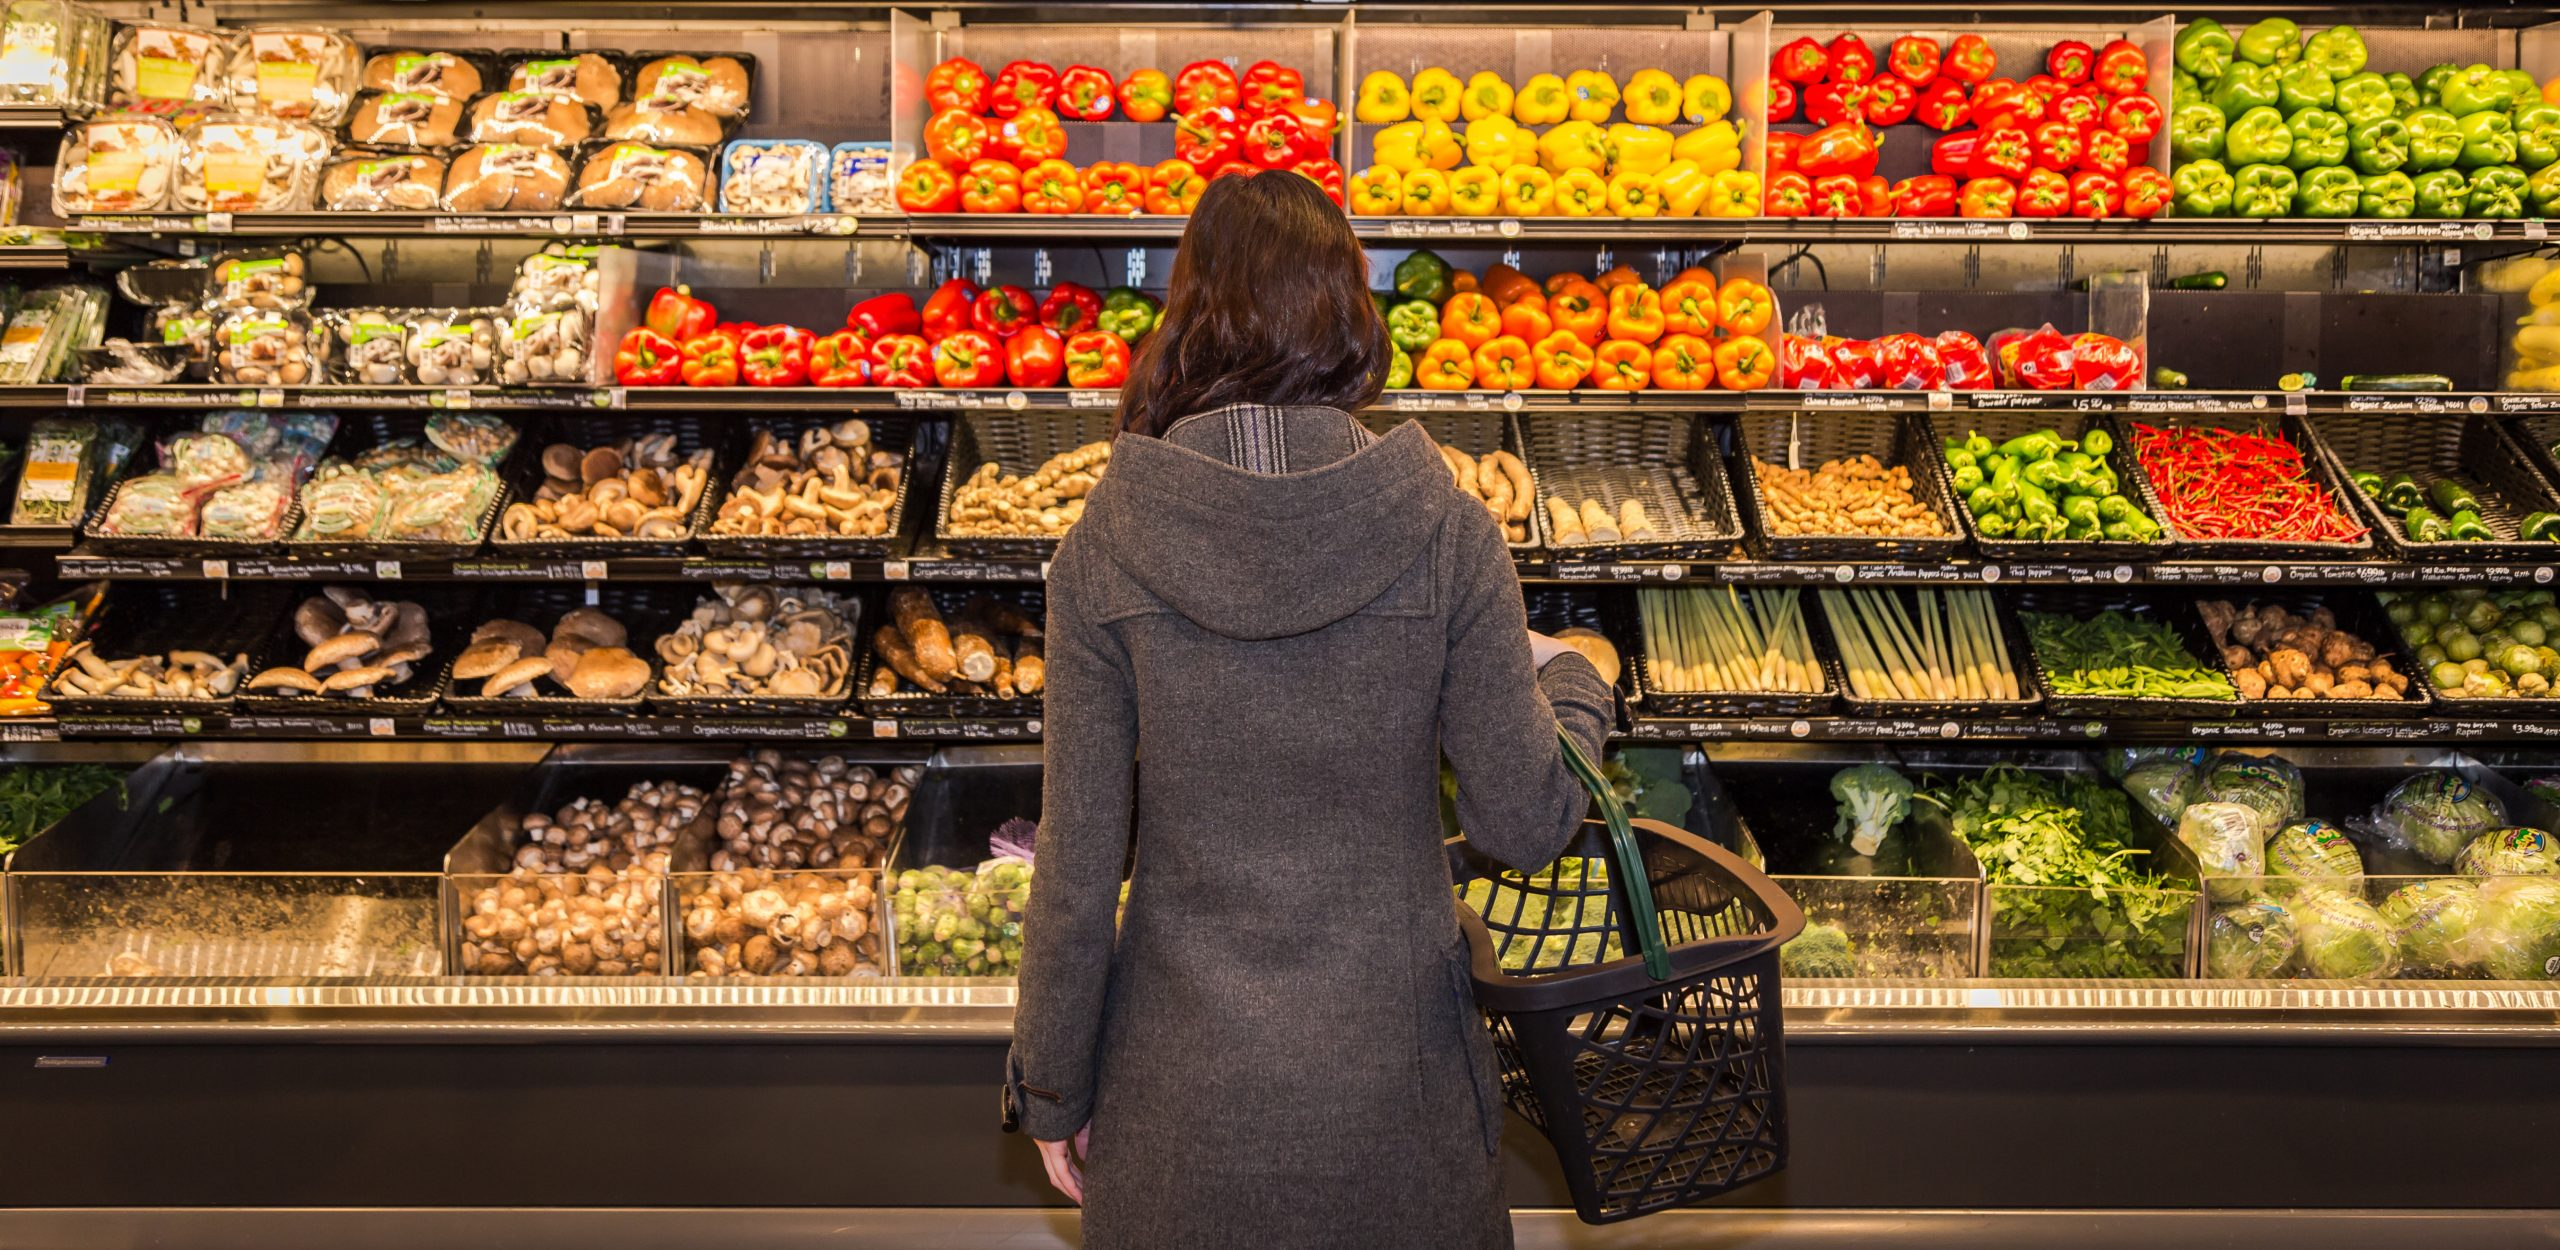 woman in front of produce